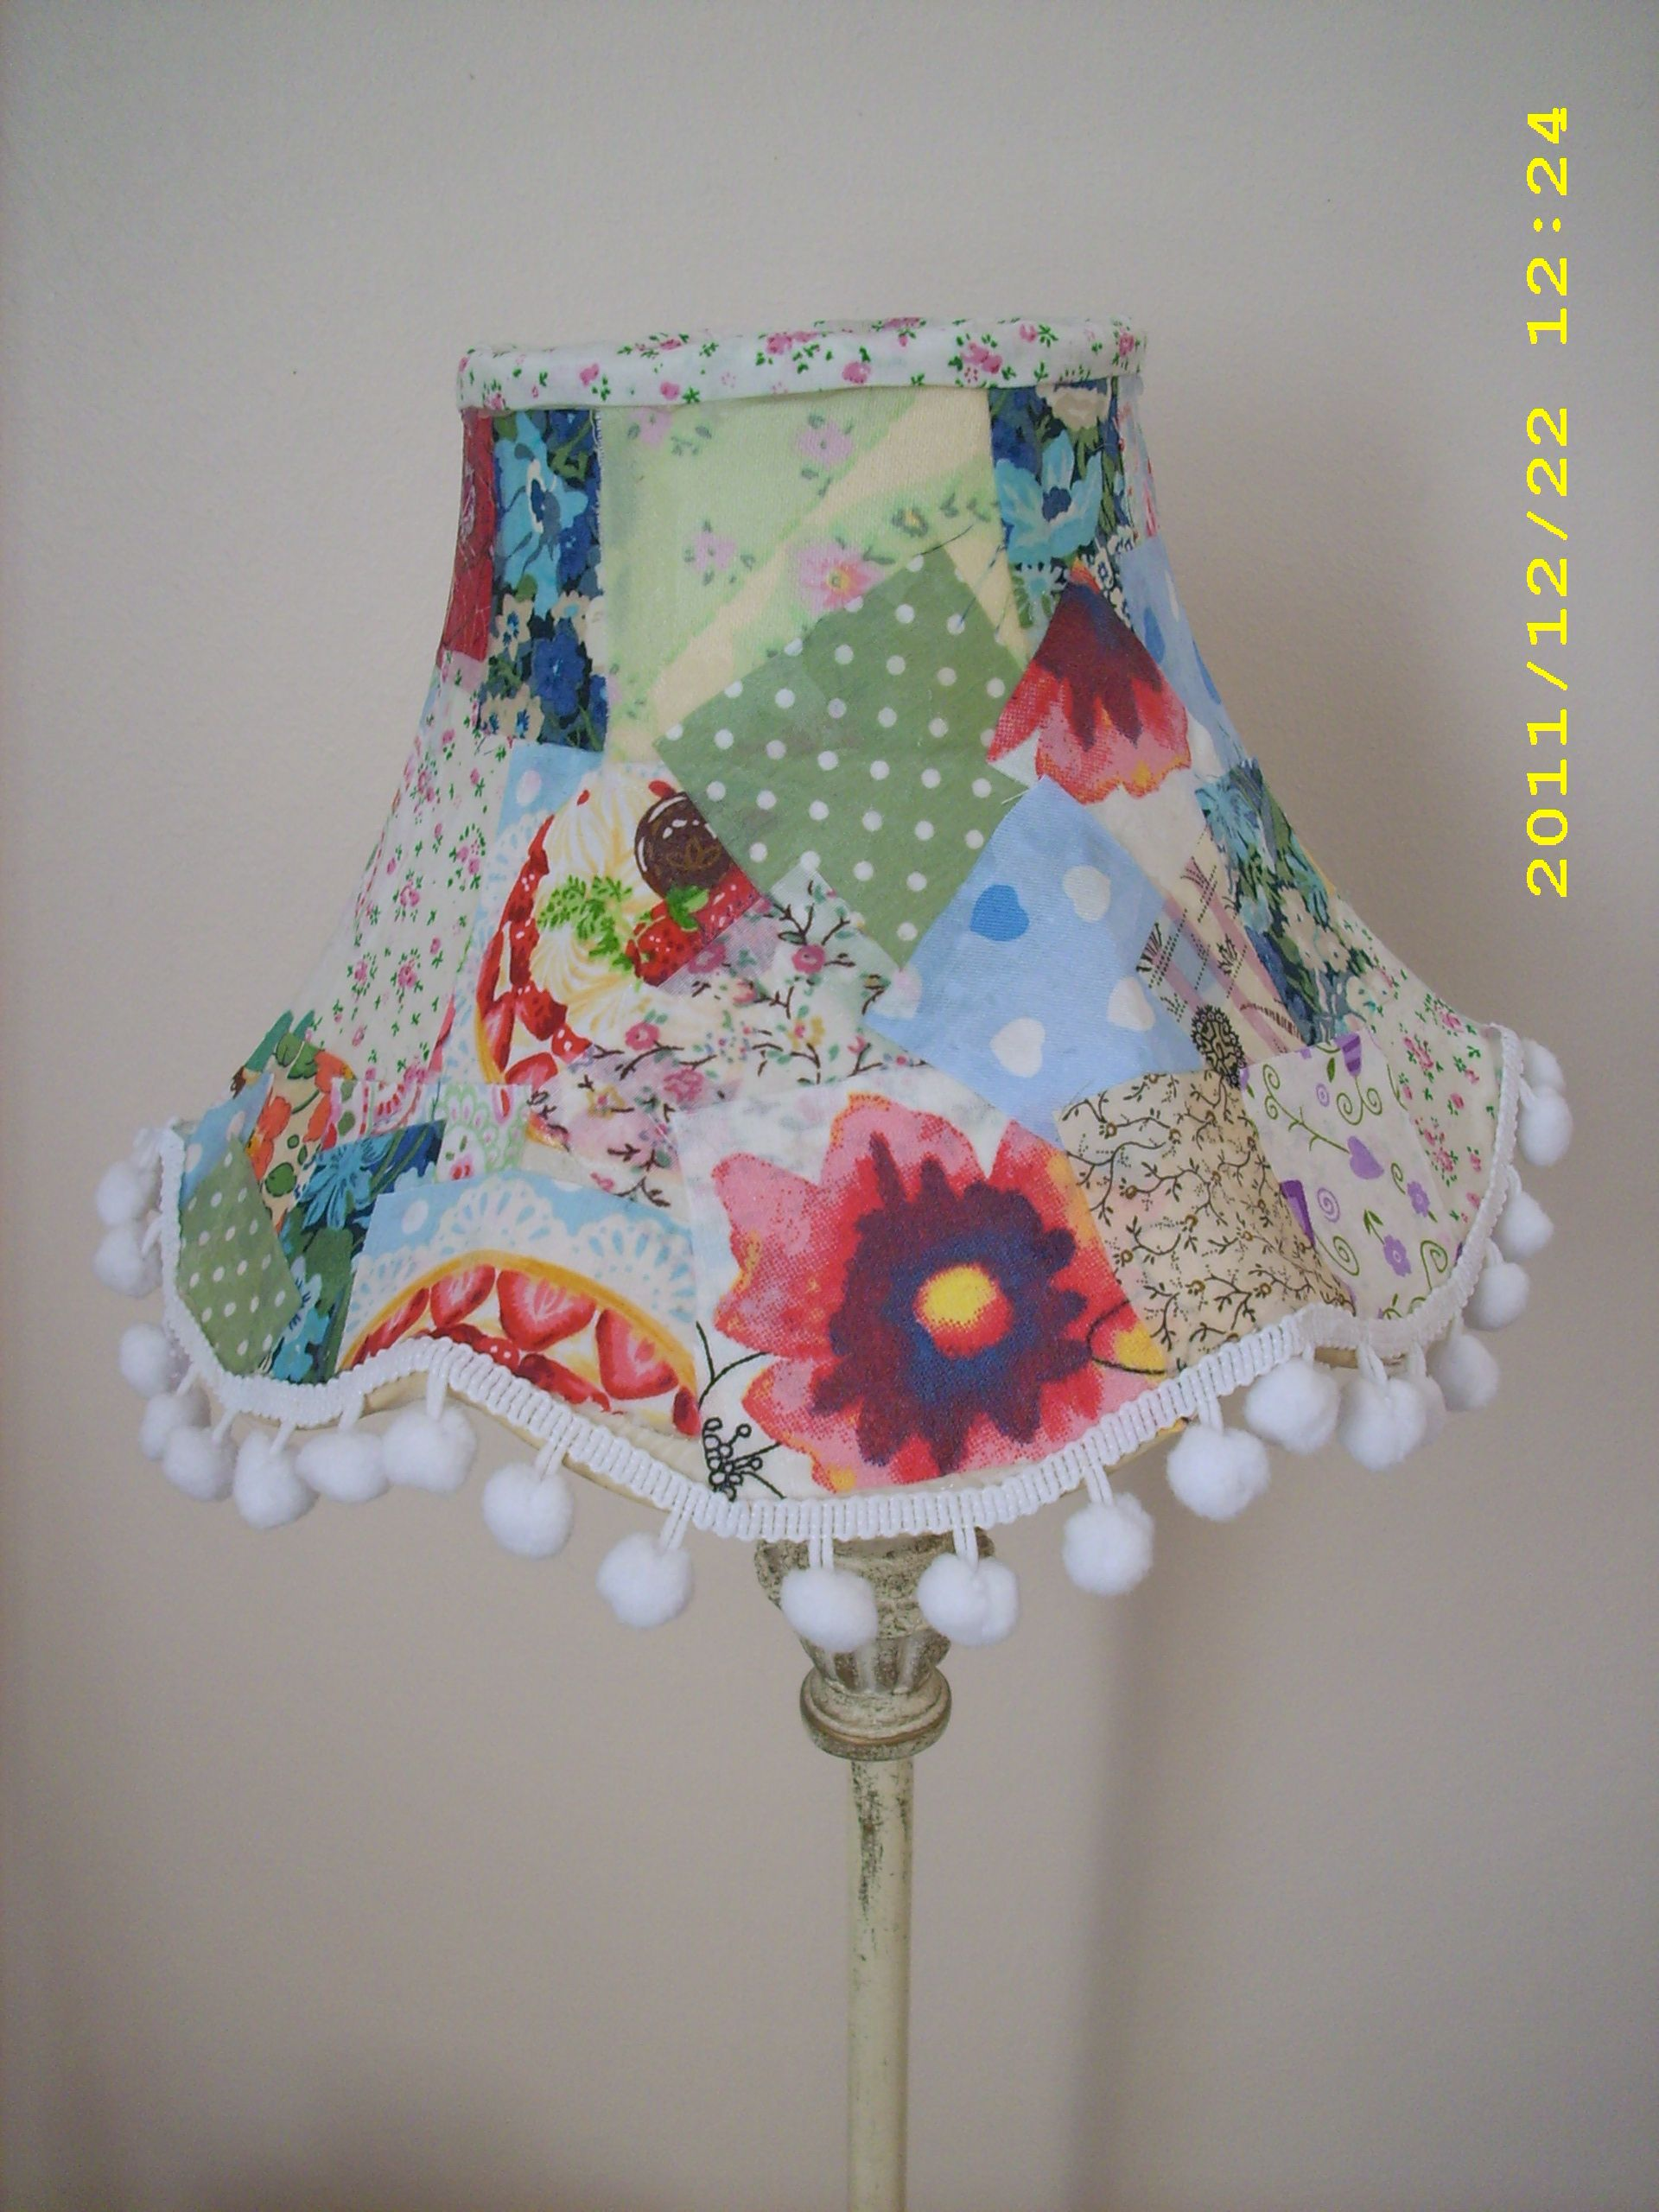 DIY Patchwork Lampshade Using Fabric Scraps & Mod Podge ...